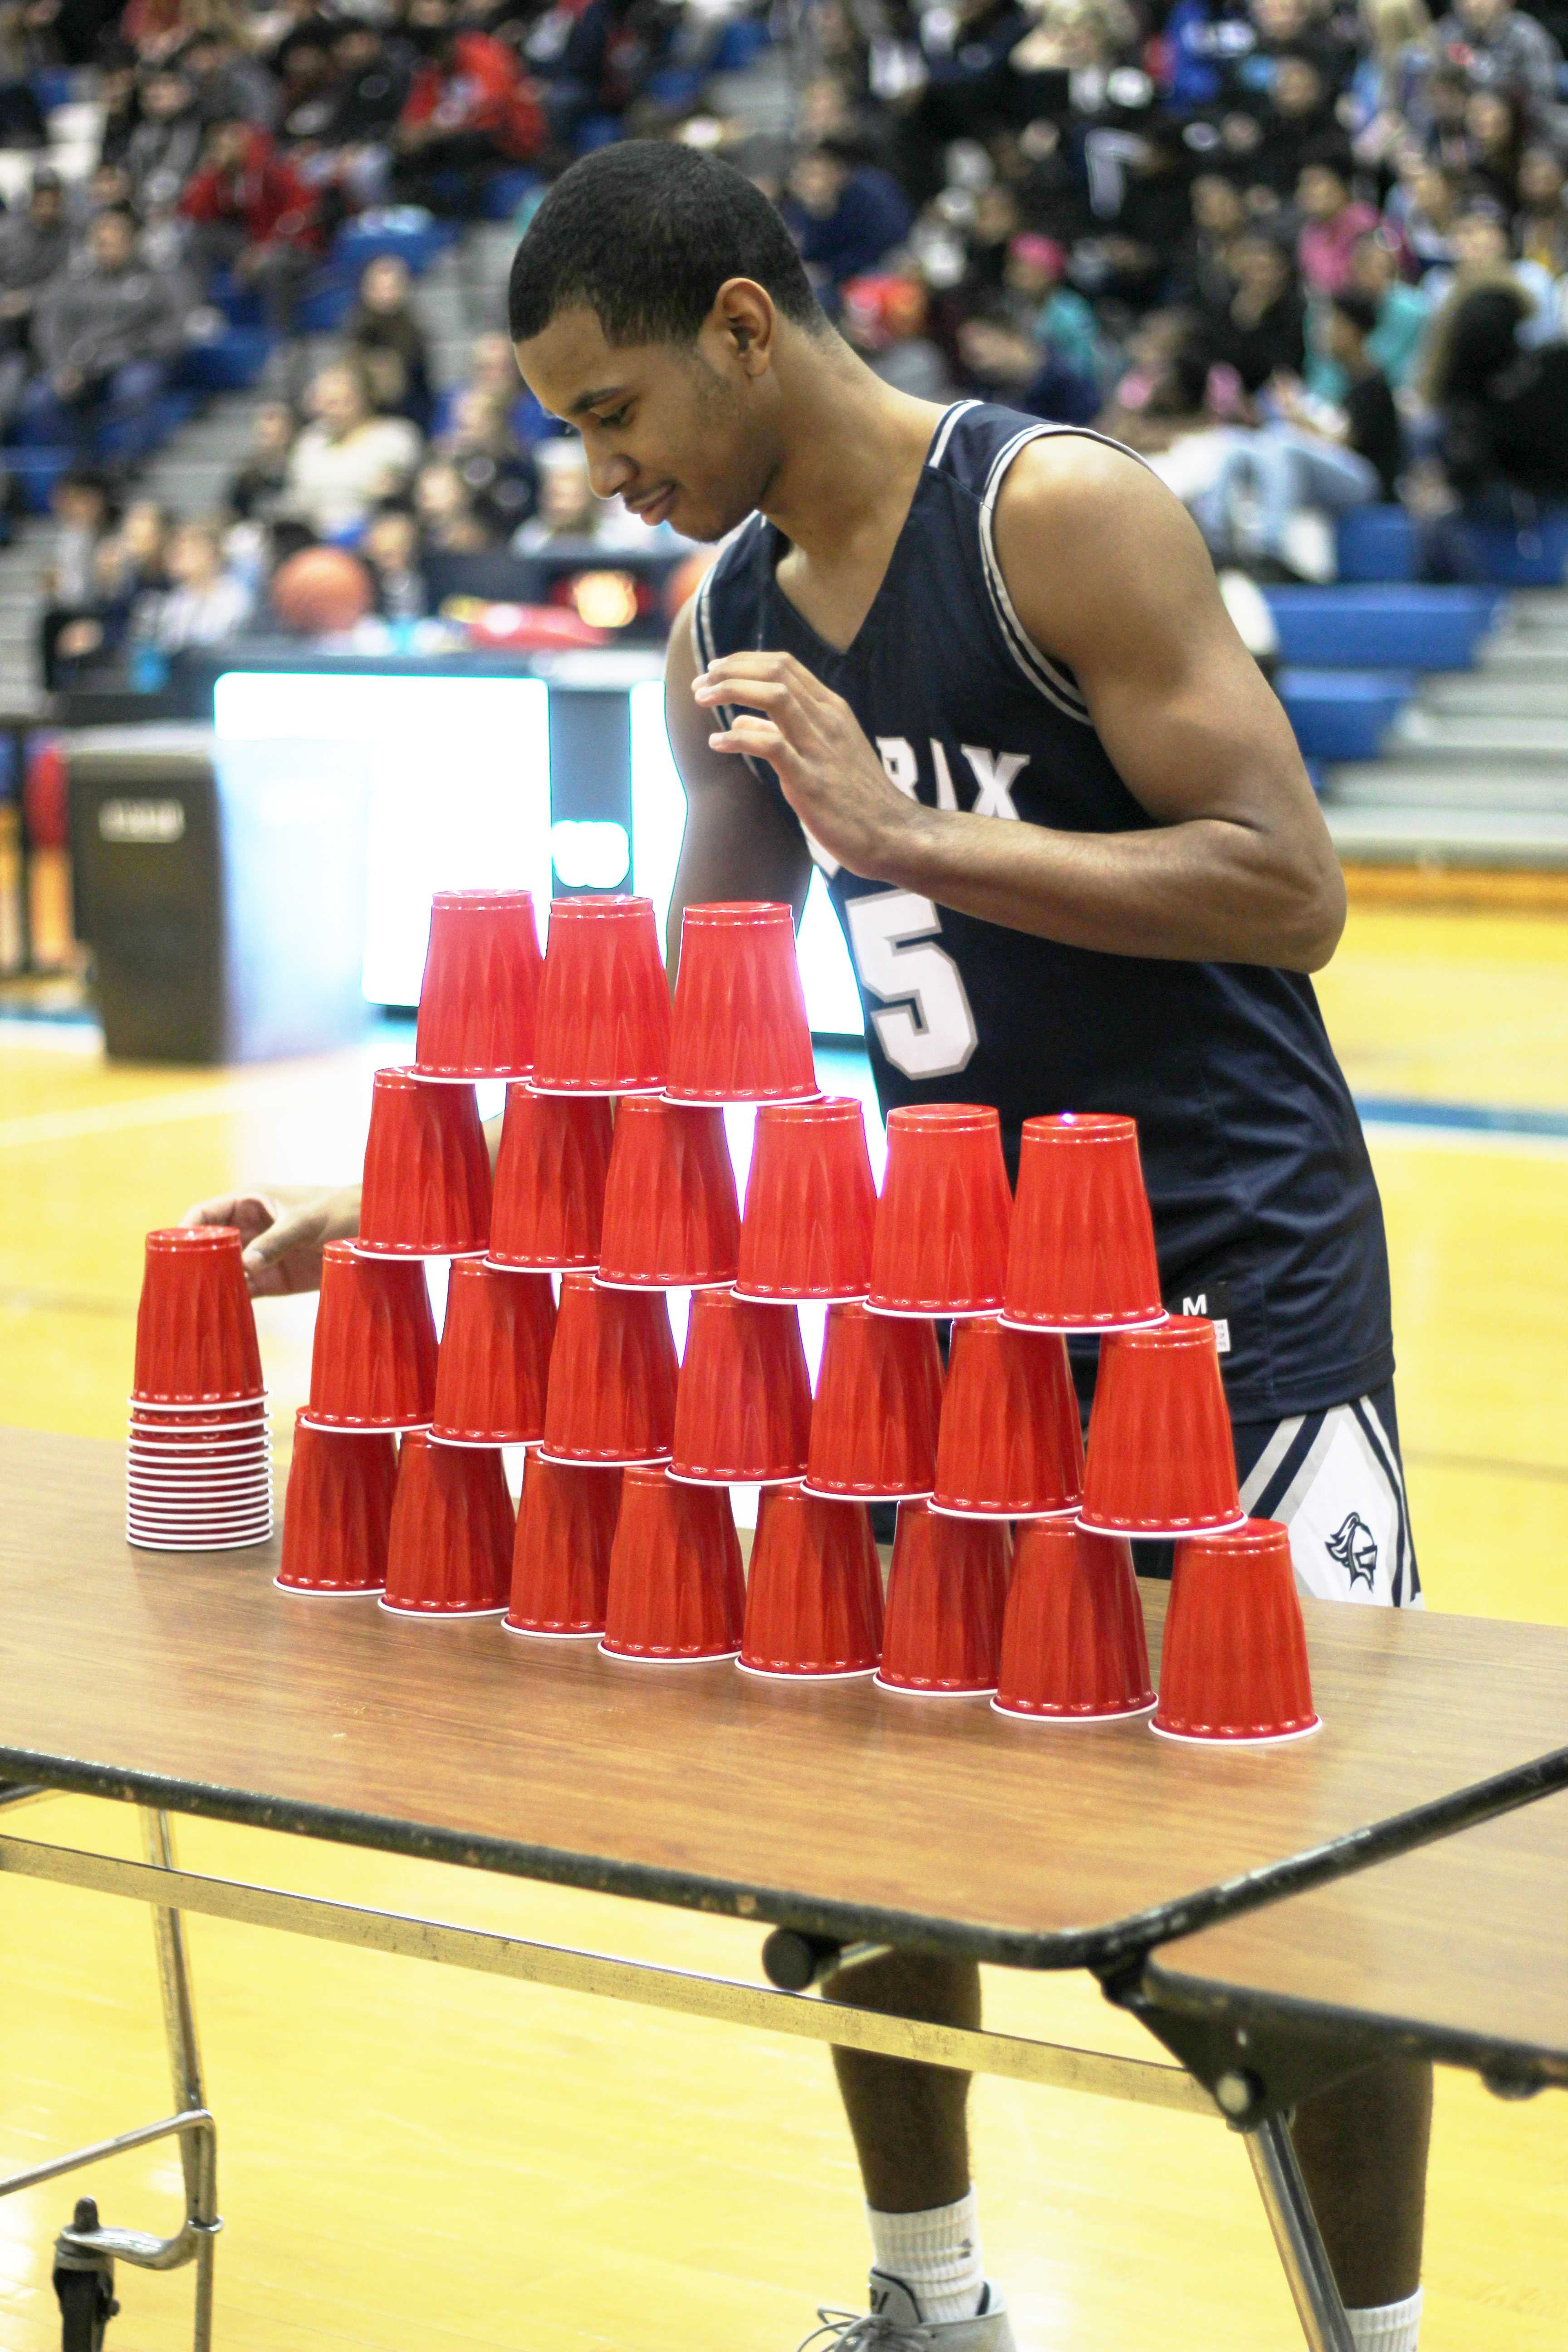 12th+grader+Kenndrel+Palmore+tries+to+stack+the+cups+as+fast+as+he+can+while+the+crowd+yells+his+name.+The+game+ended+with+him+coming+in+second+place.+